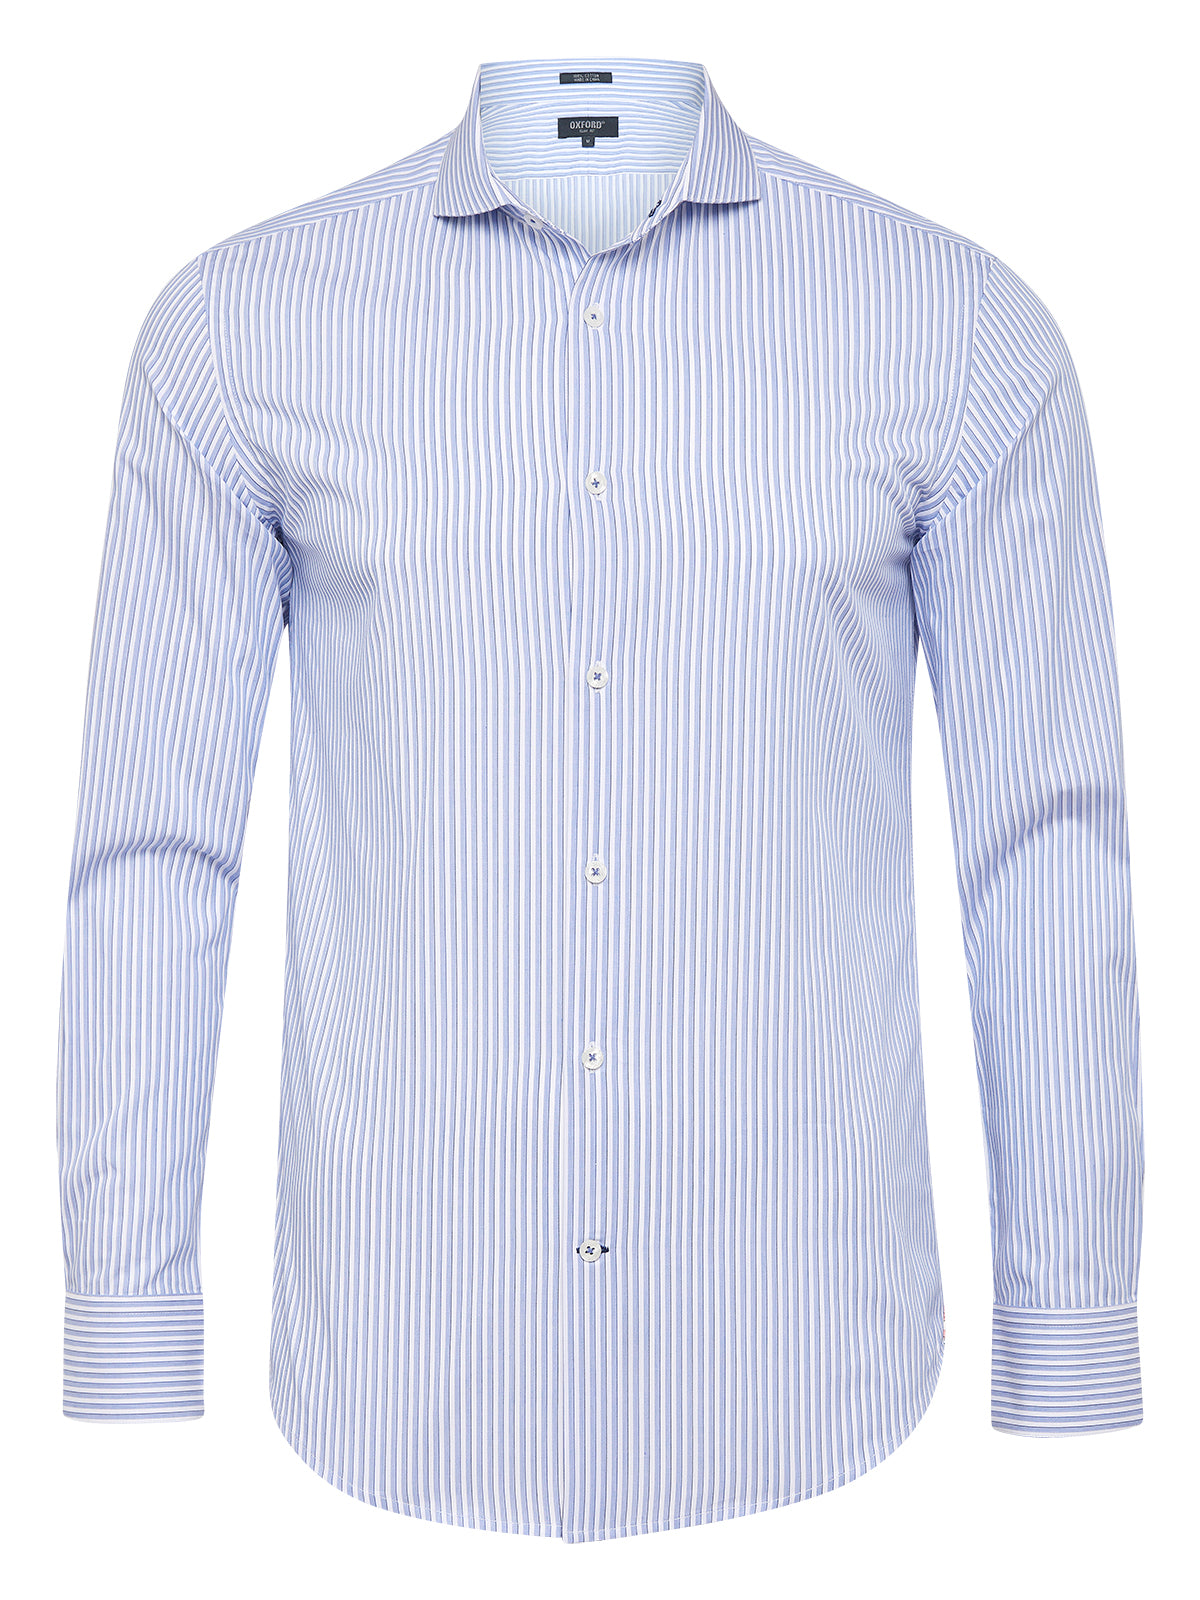 KENSINGTON STRIPED SHIRT BLUE